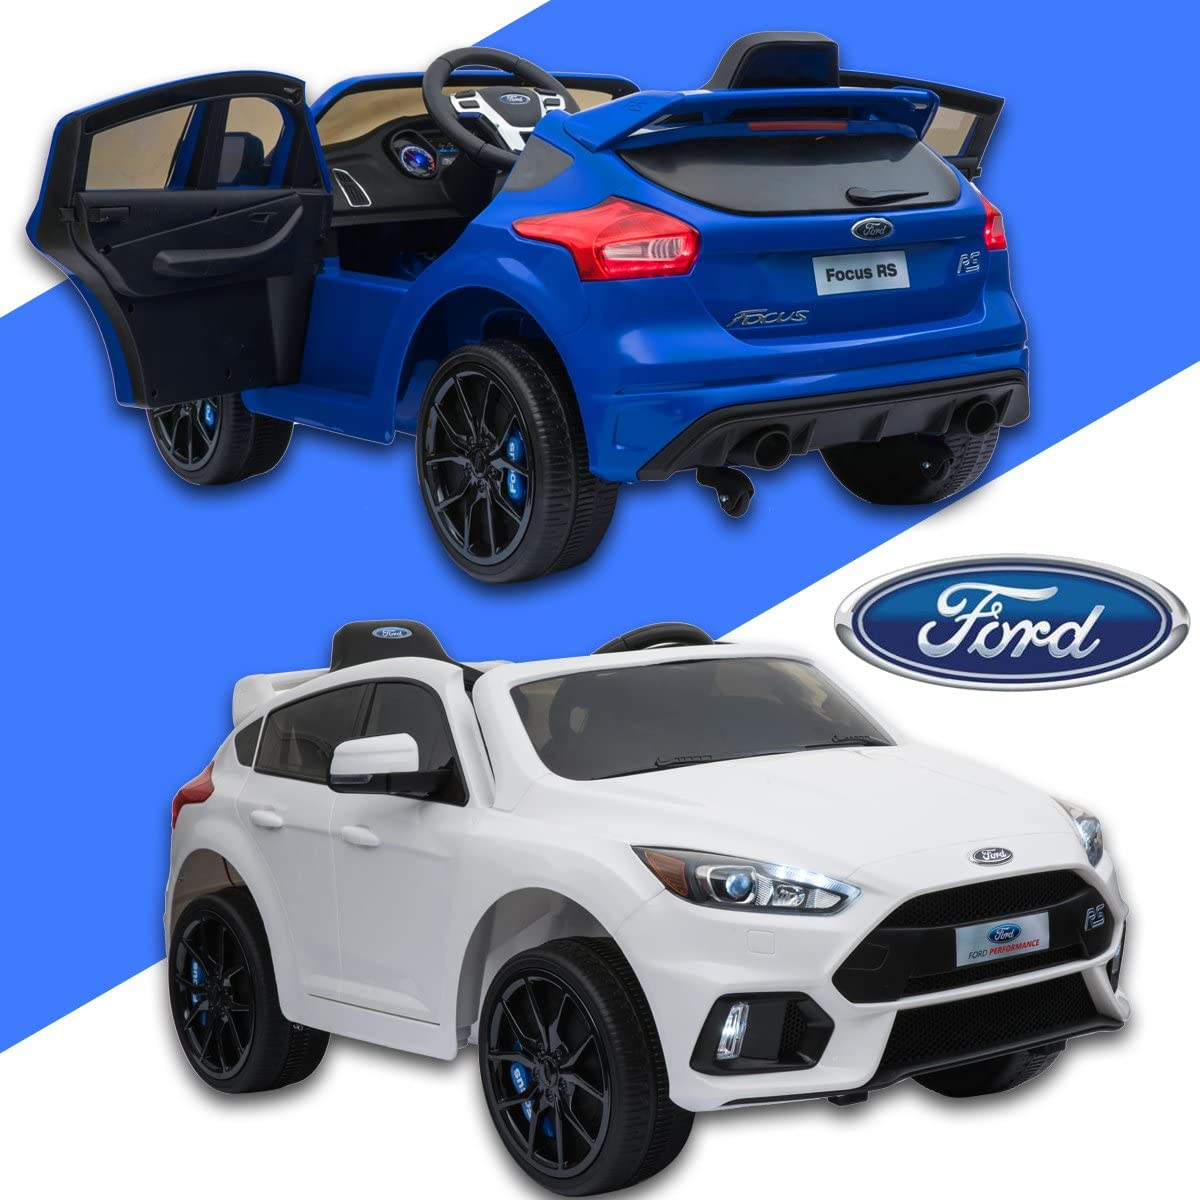 ICE Kids Official Electric Ride on Car Ford Focus RS, Original Licenced, Battery Powered, Opening Doors, 2x Engine, 12 V Battery, 2.4 Ghz remote